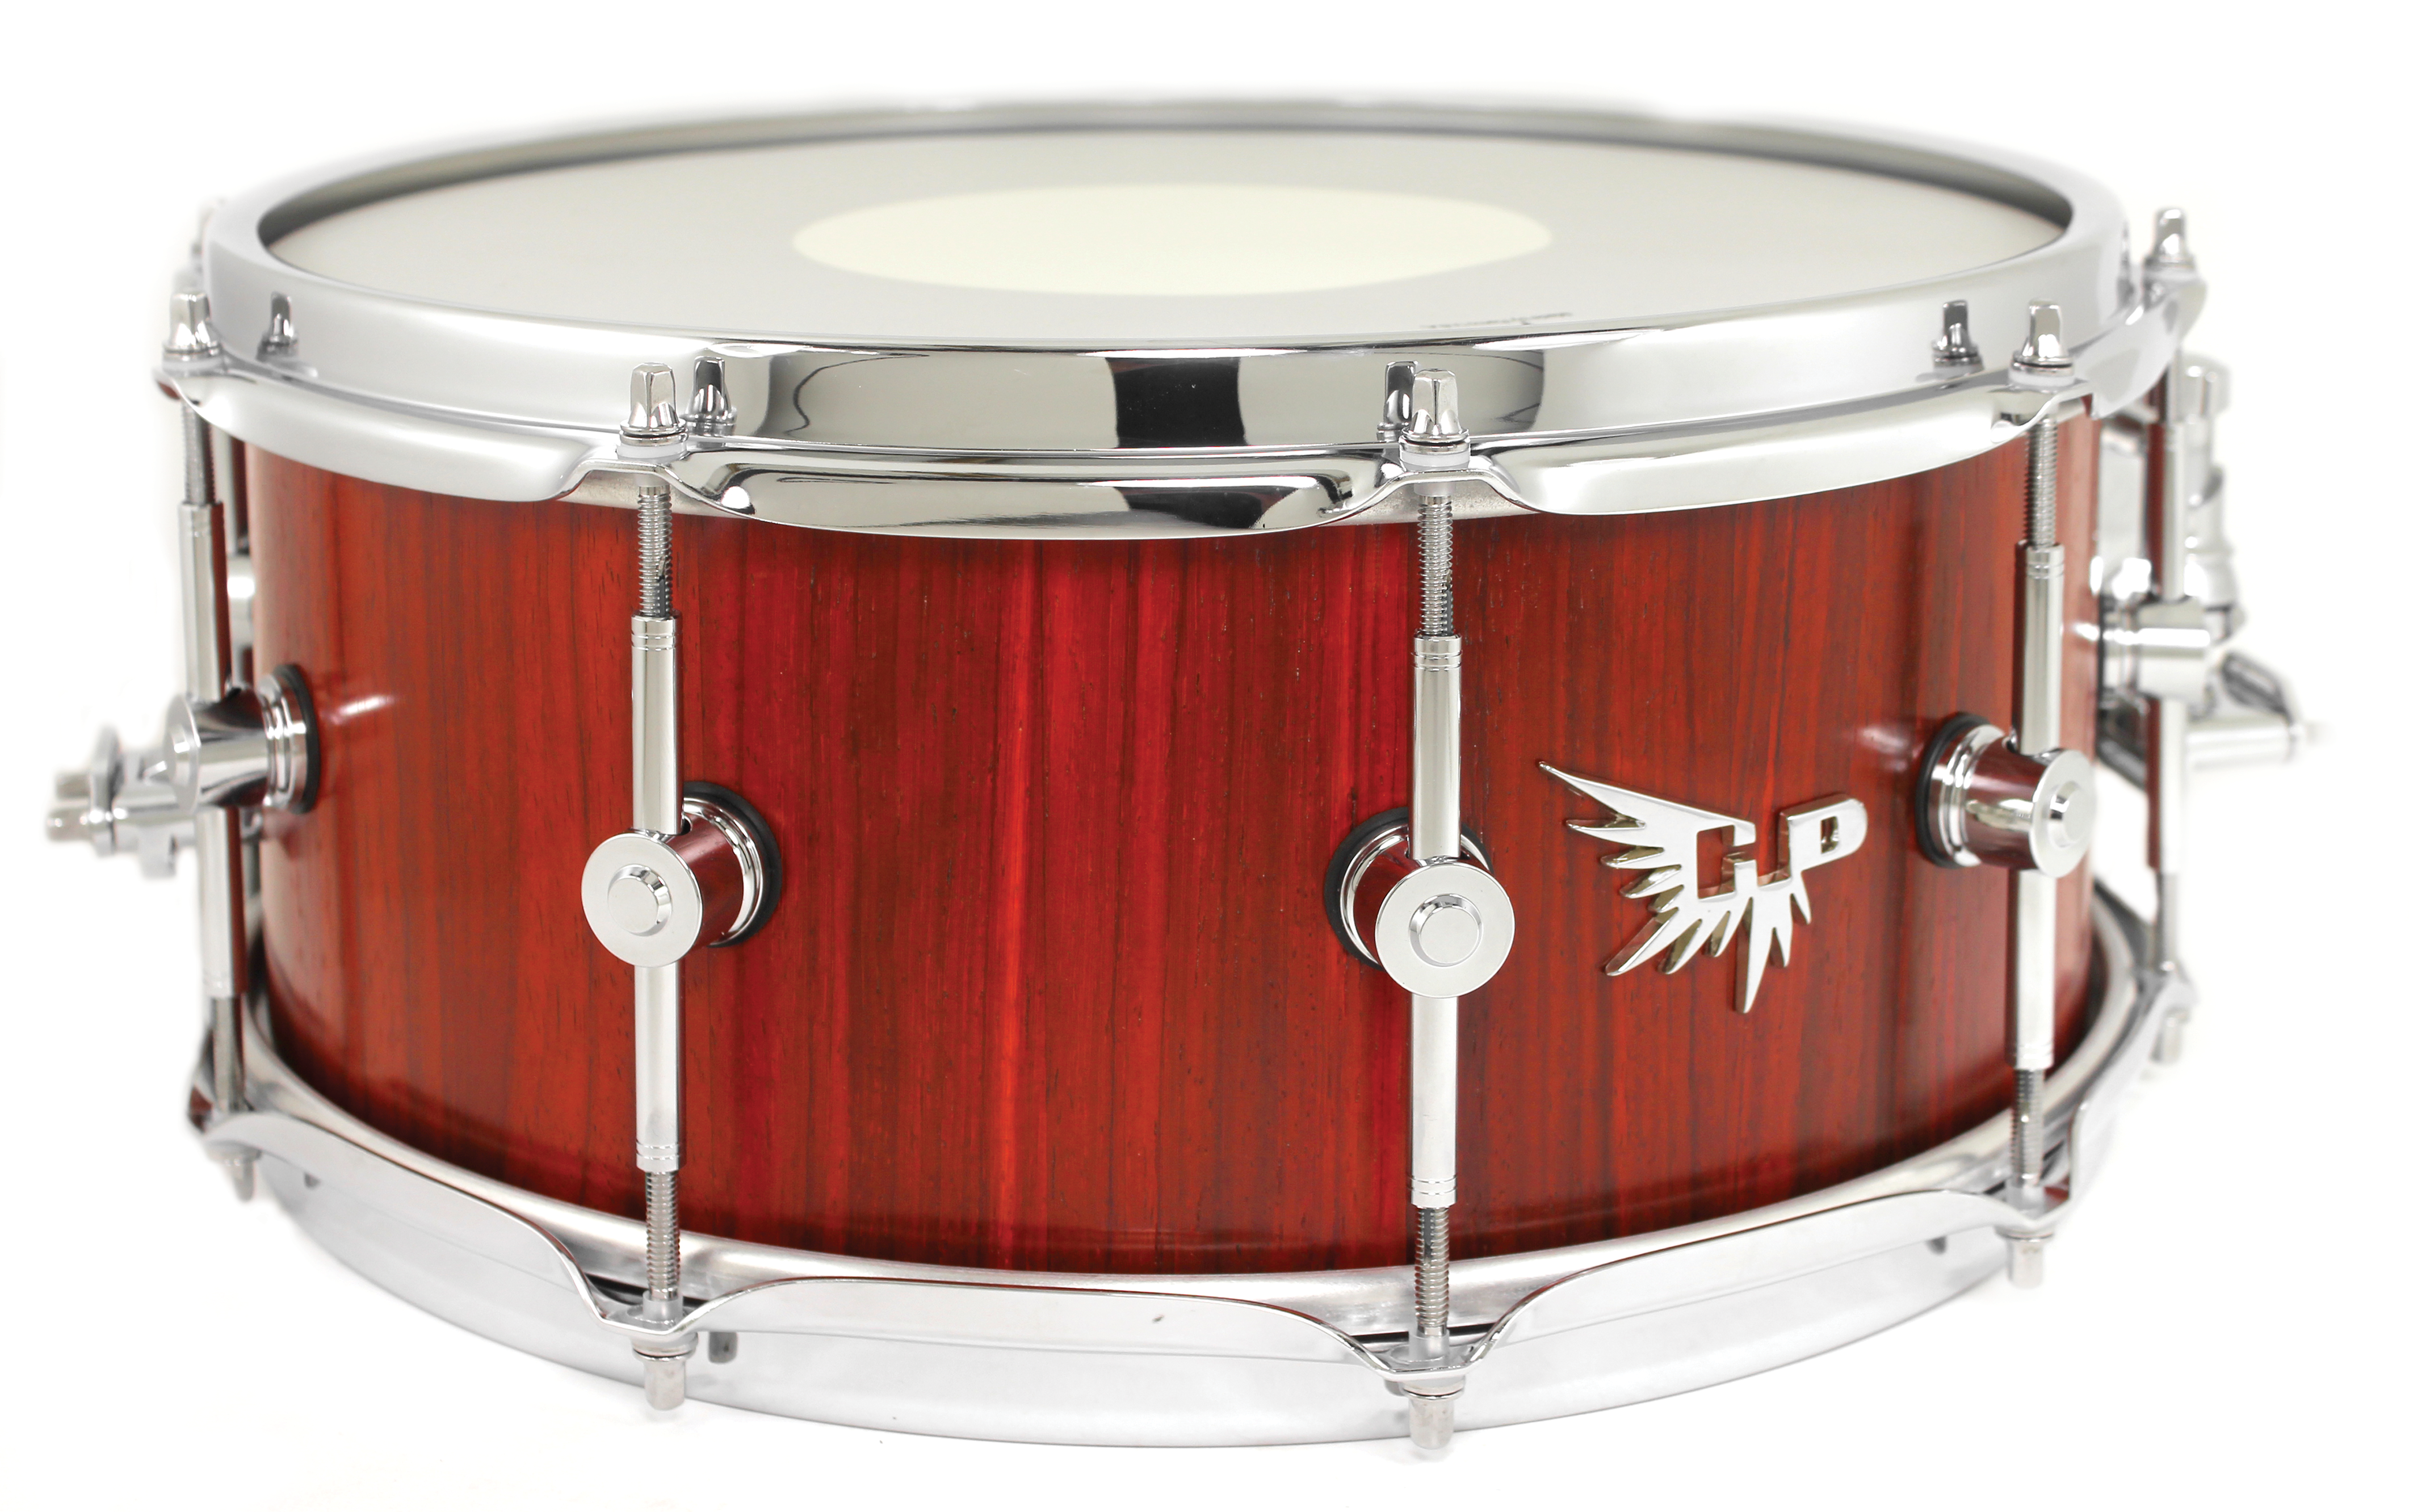 PNG Snare Drum - 86851